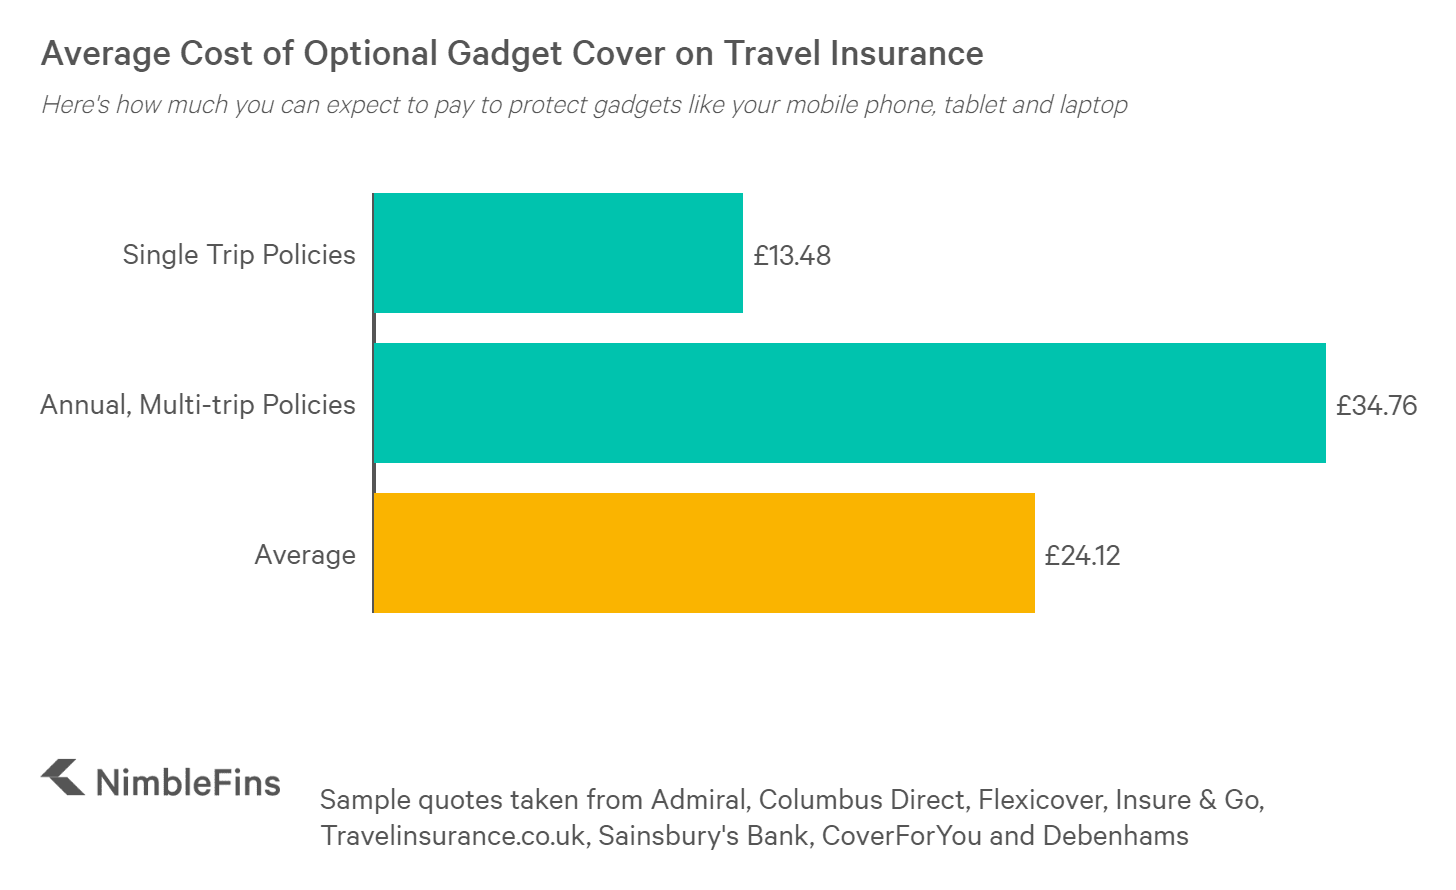 chart showing the cost of optional gadget cover for travel insurance, for both Single trip plans and Annual, Multi-trip plans